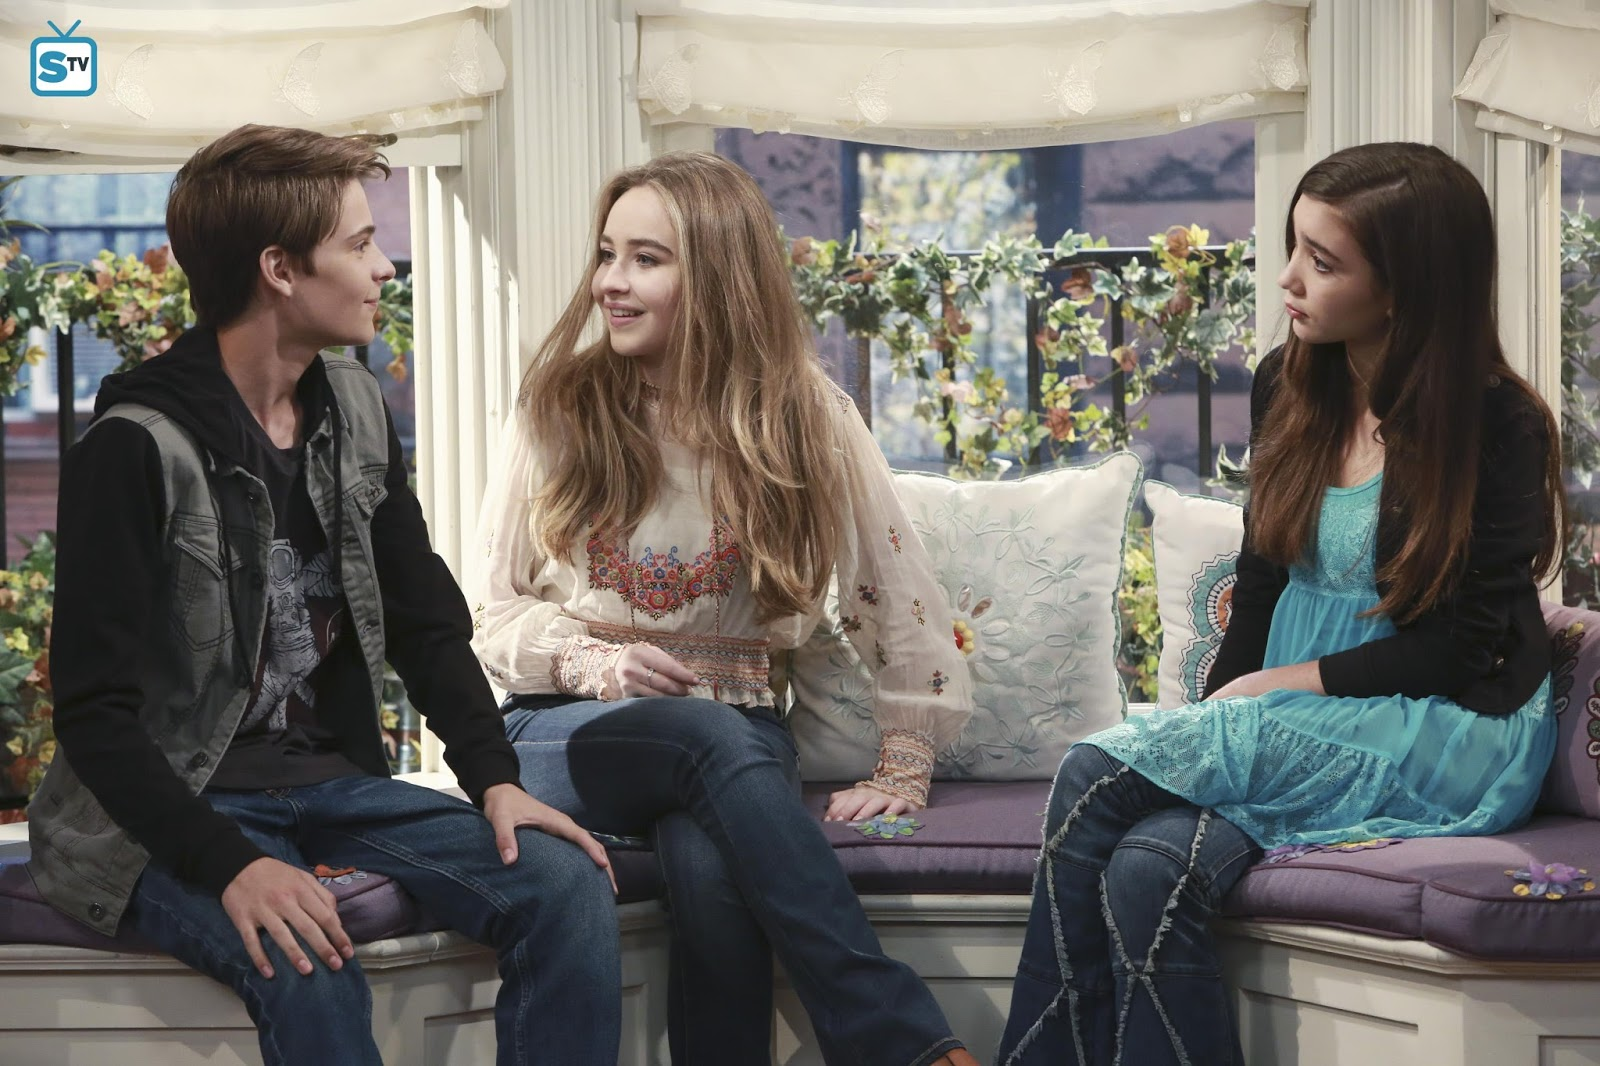 Girl Meets World - Episodes 2.28 - 2.29 - Promotional Photos + Synopses